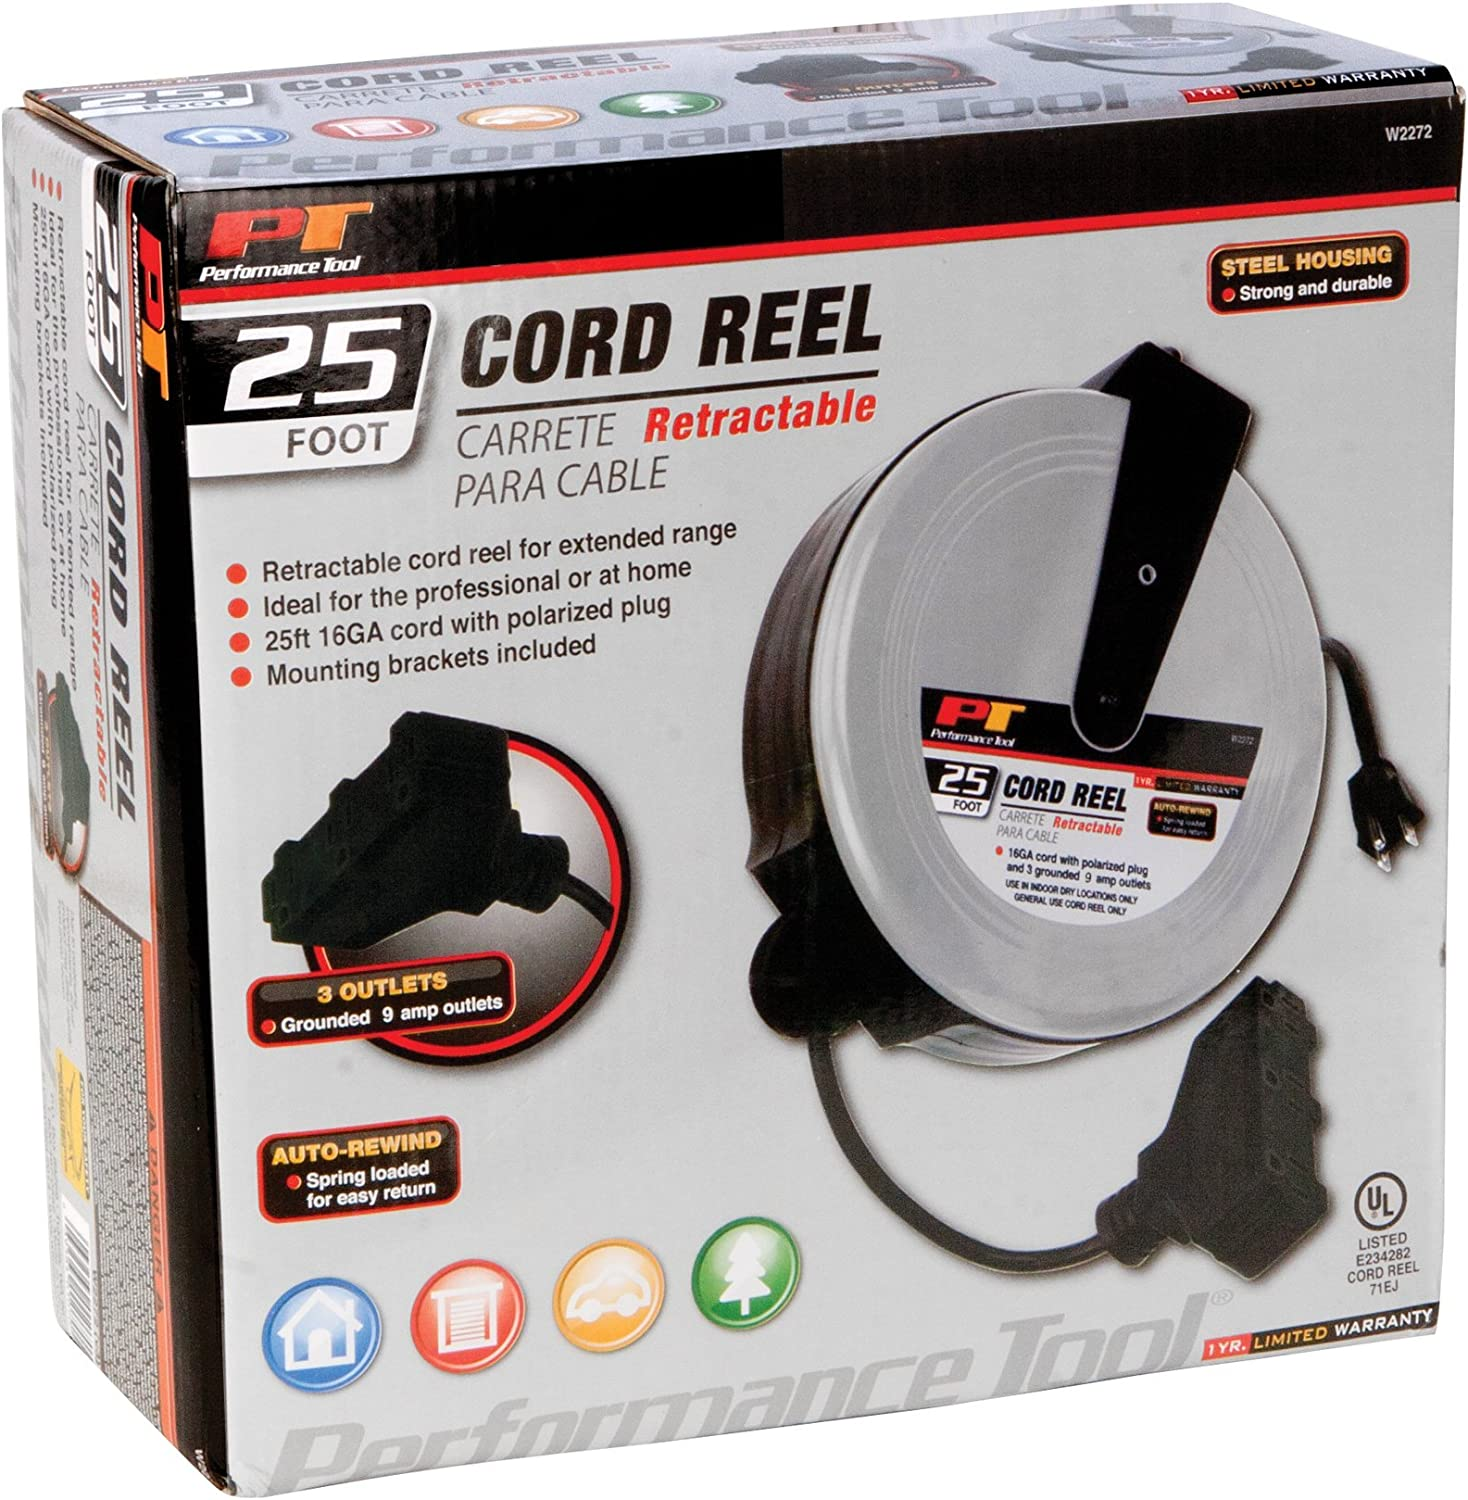 Performance Tool W2275 20 18GA Retractable Cord Reel with Spring Loaded Auto-Rewind